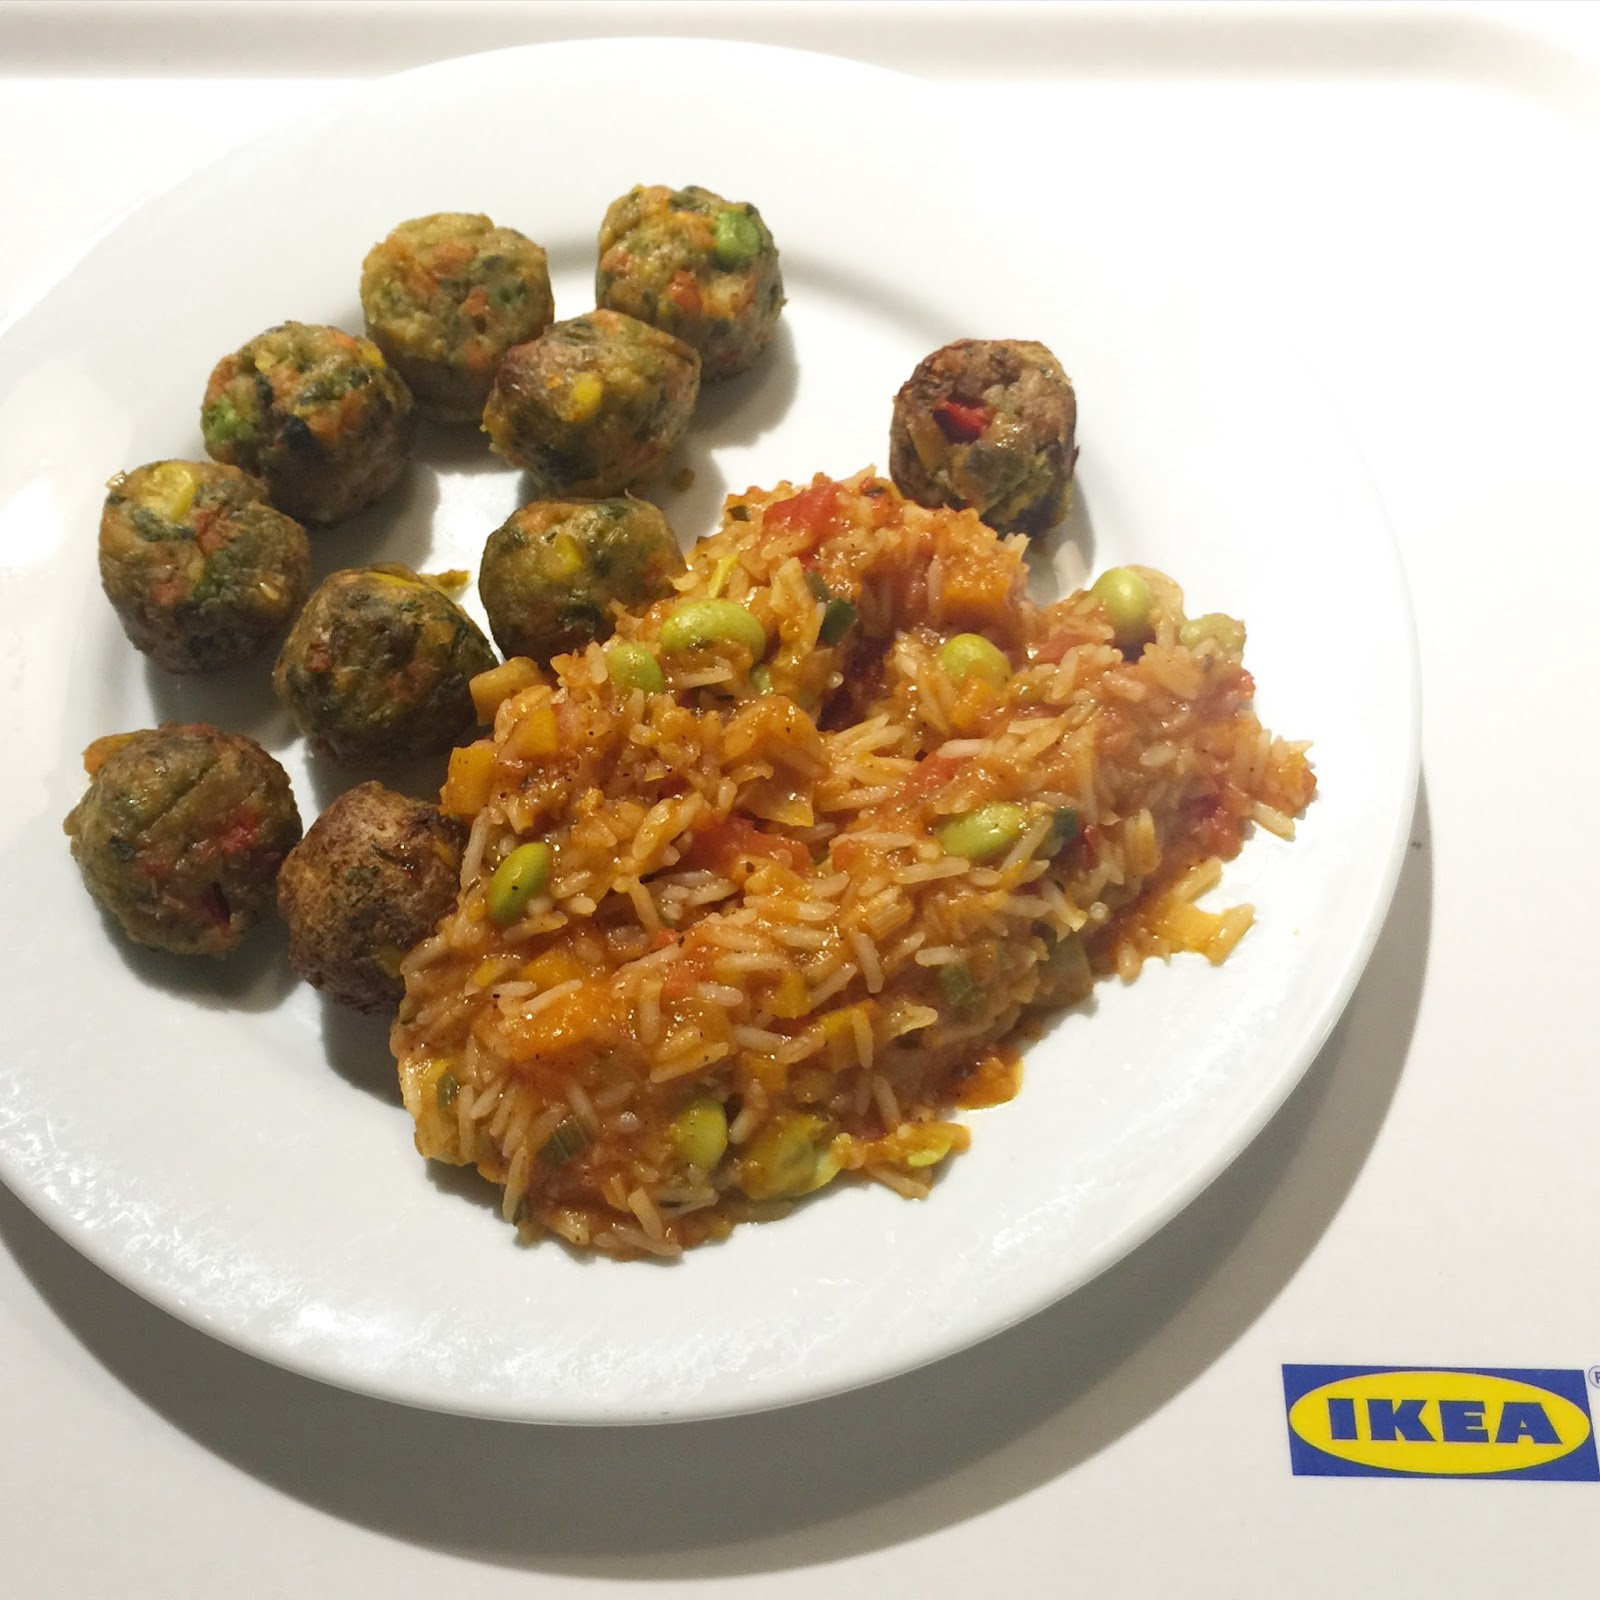 Ikea veggie balls the v nice life for Ikea vegetable balls